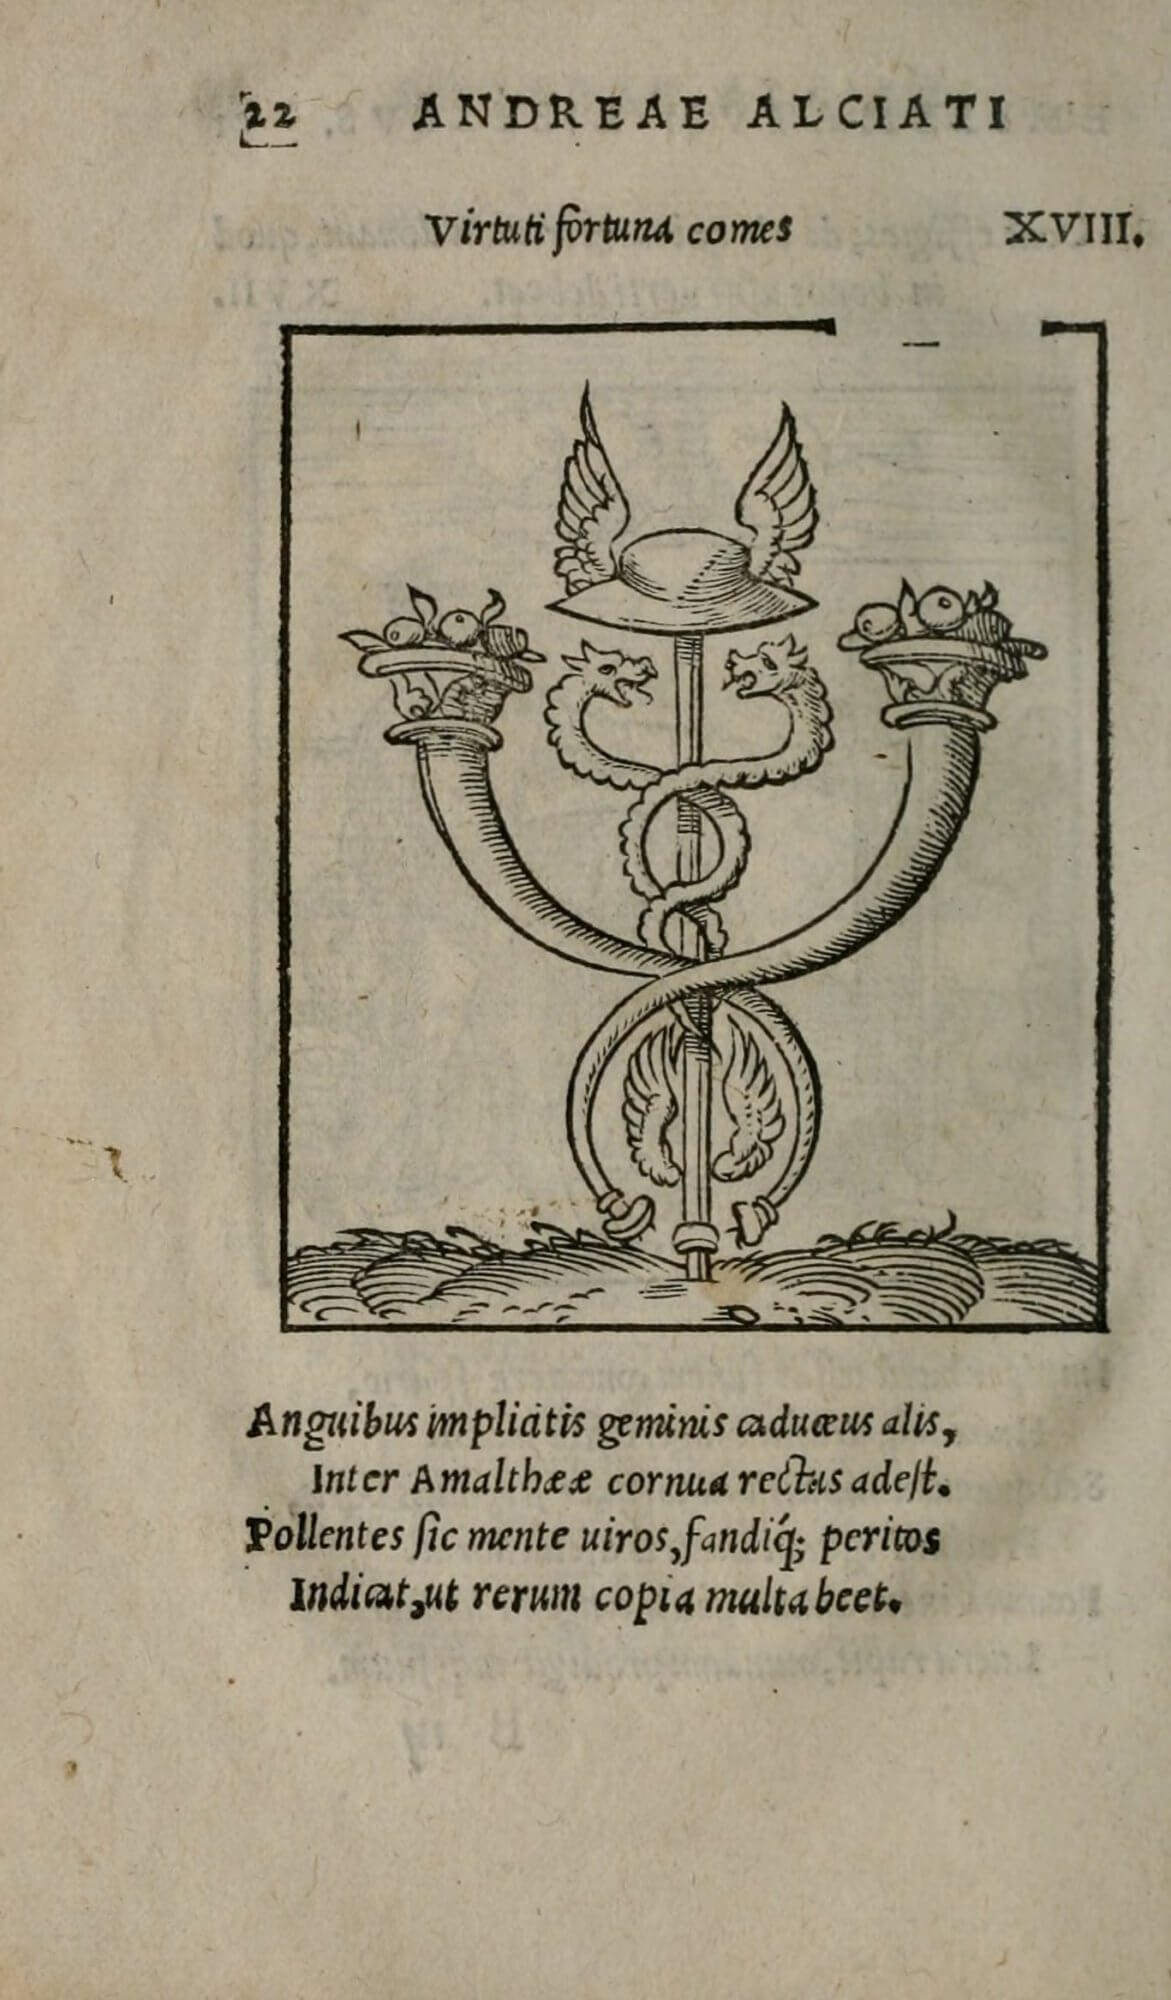 The border on this emblem woodblock is broken along the top edge, perhaps because the woodcut was damaged. This emblem served as the basis for the printer's device used in this book and passed down through the Wechel family.